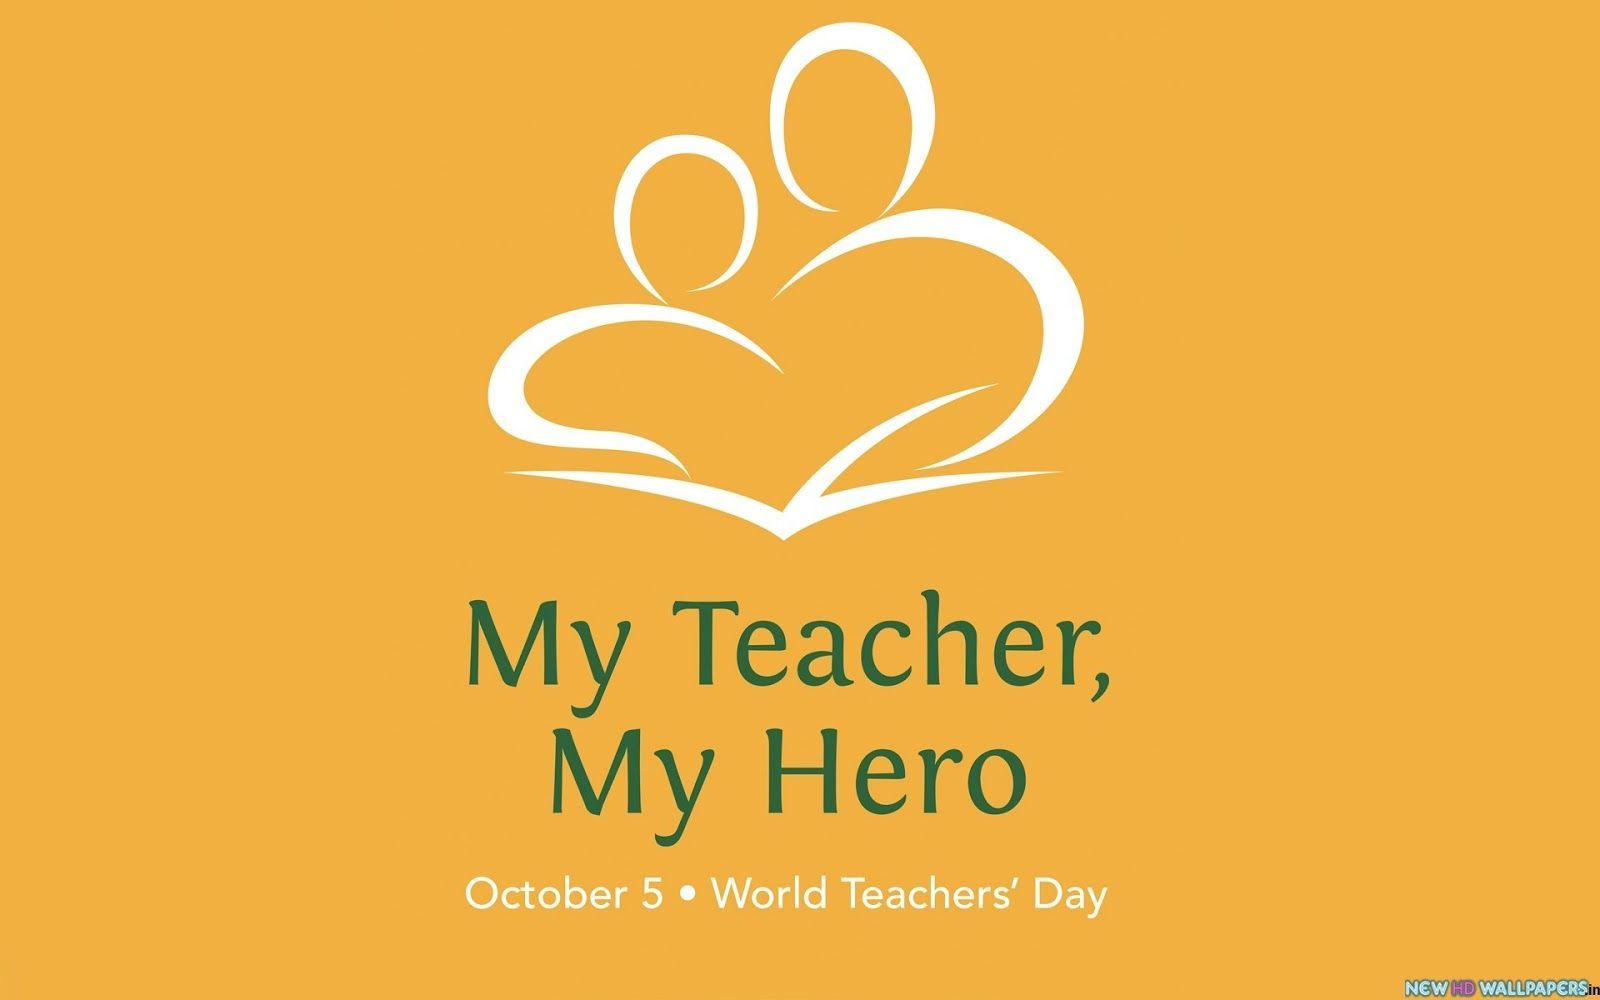 Hd Happy Teachers Day Images Pics Photos Wallpapers Happy Teachers Day Teachers Day Teachers Day Wishes